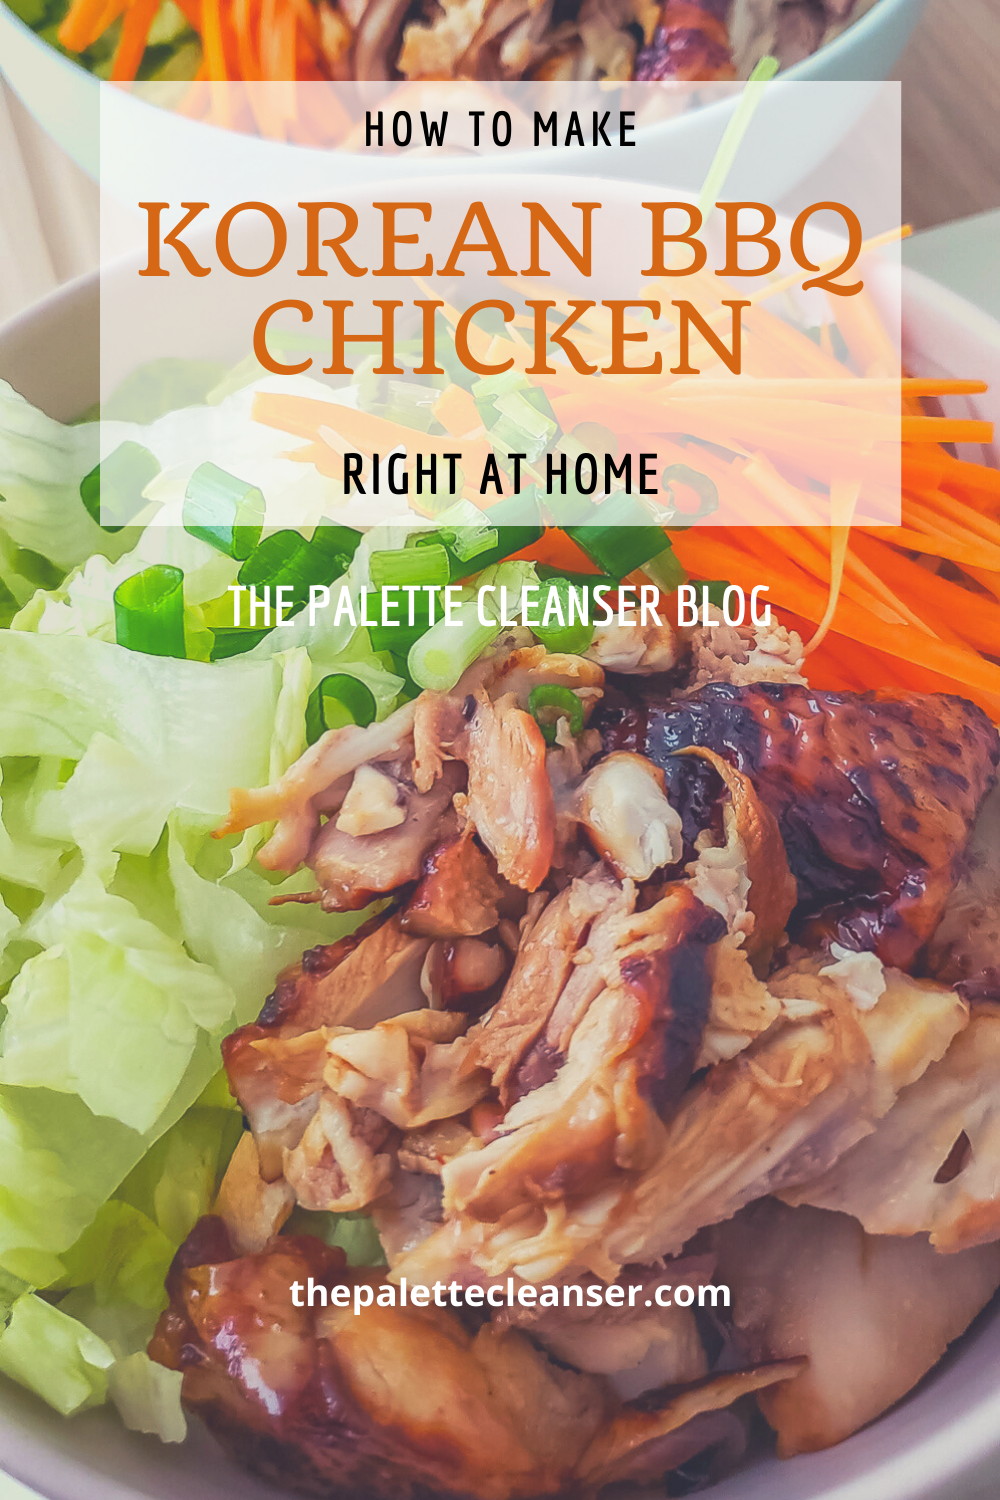 Korean Barbecue Chicken at home recipe